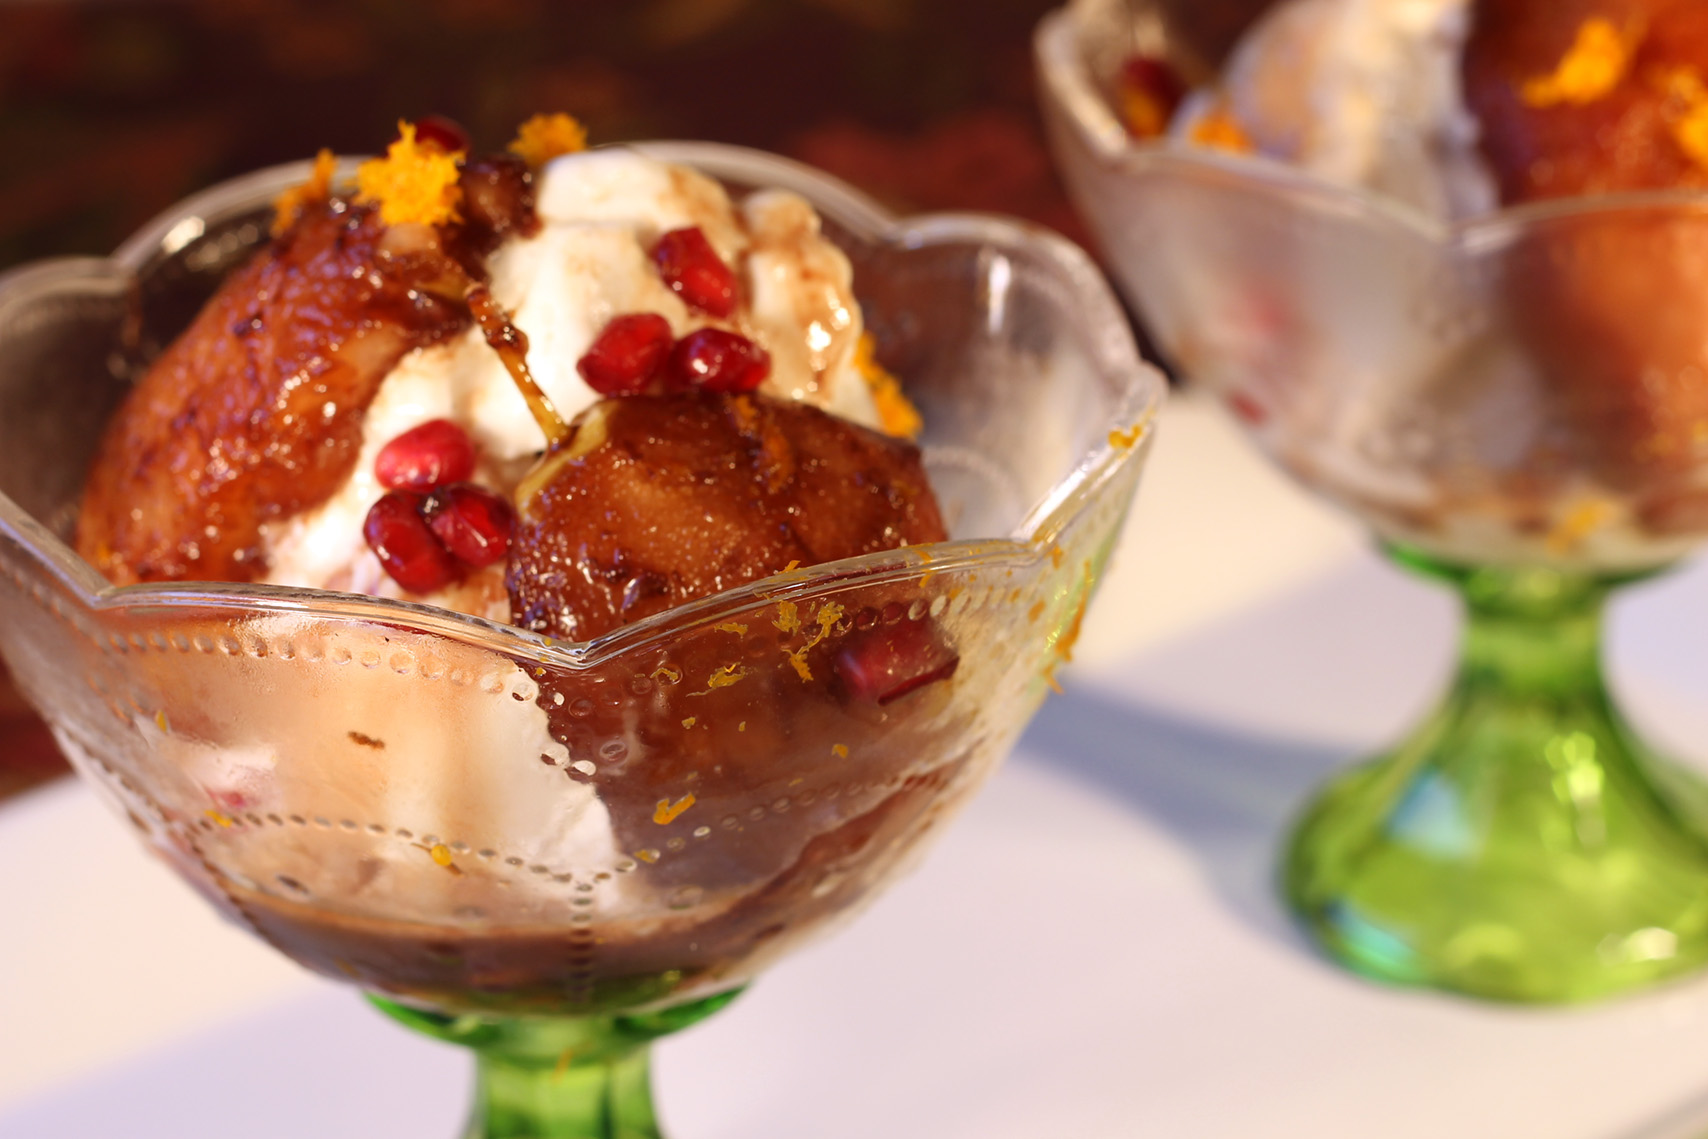 Cinnamon-Infused Pears with Pomegranate Syrup